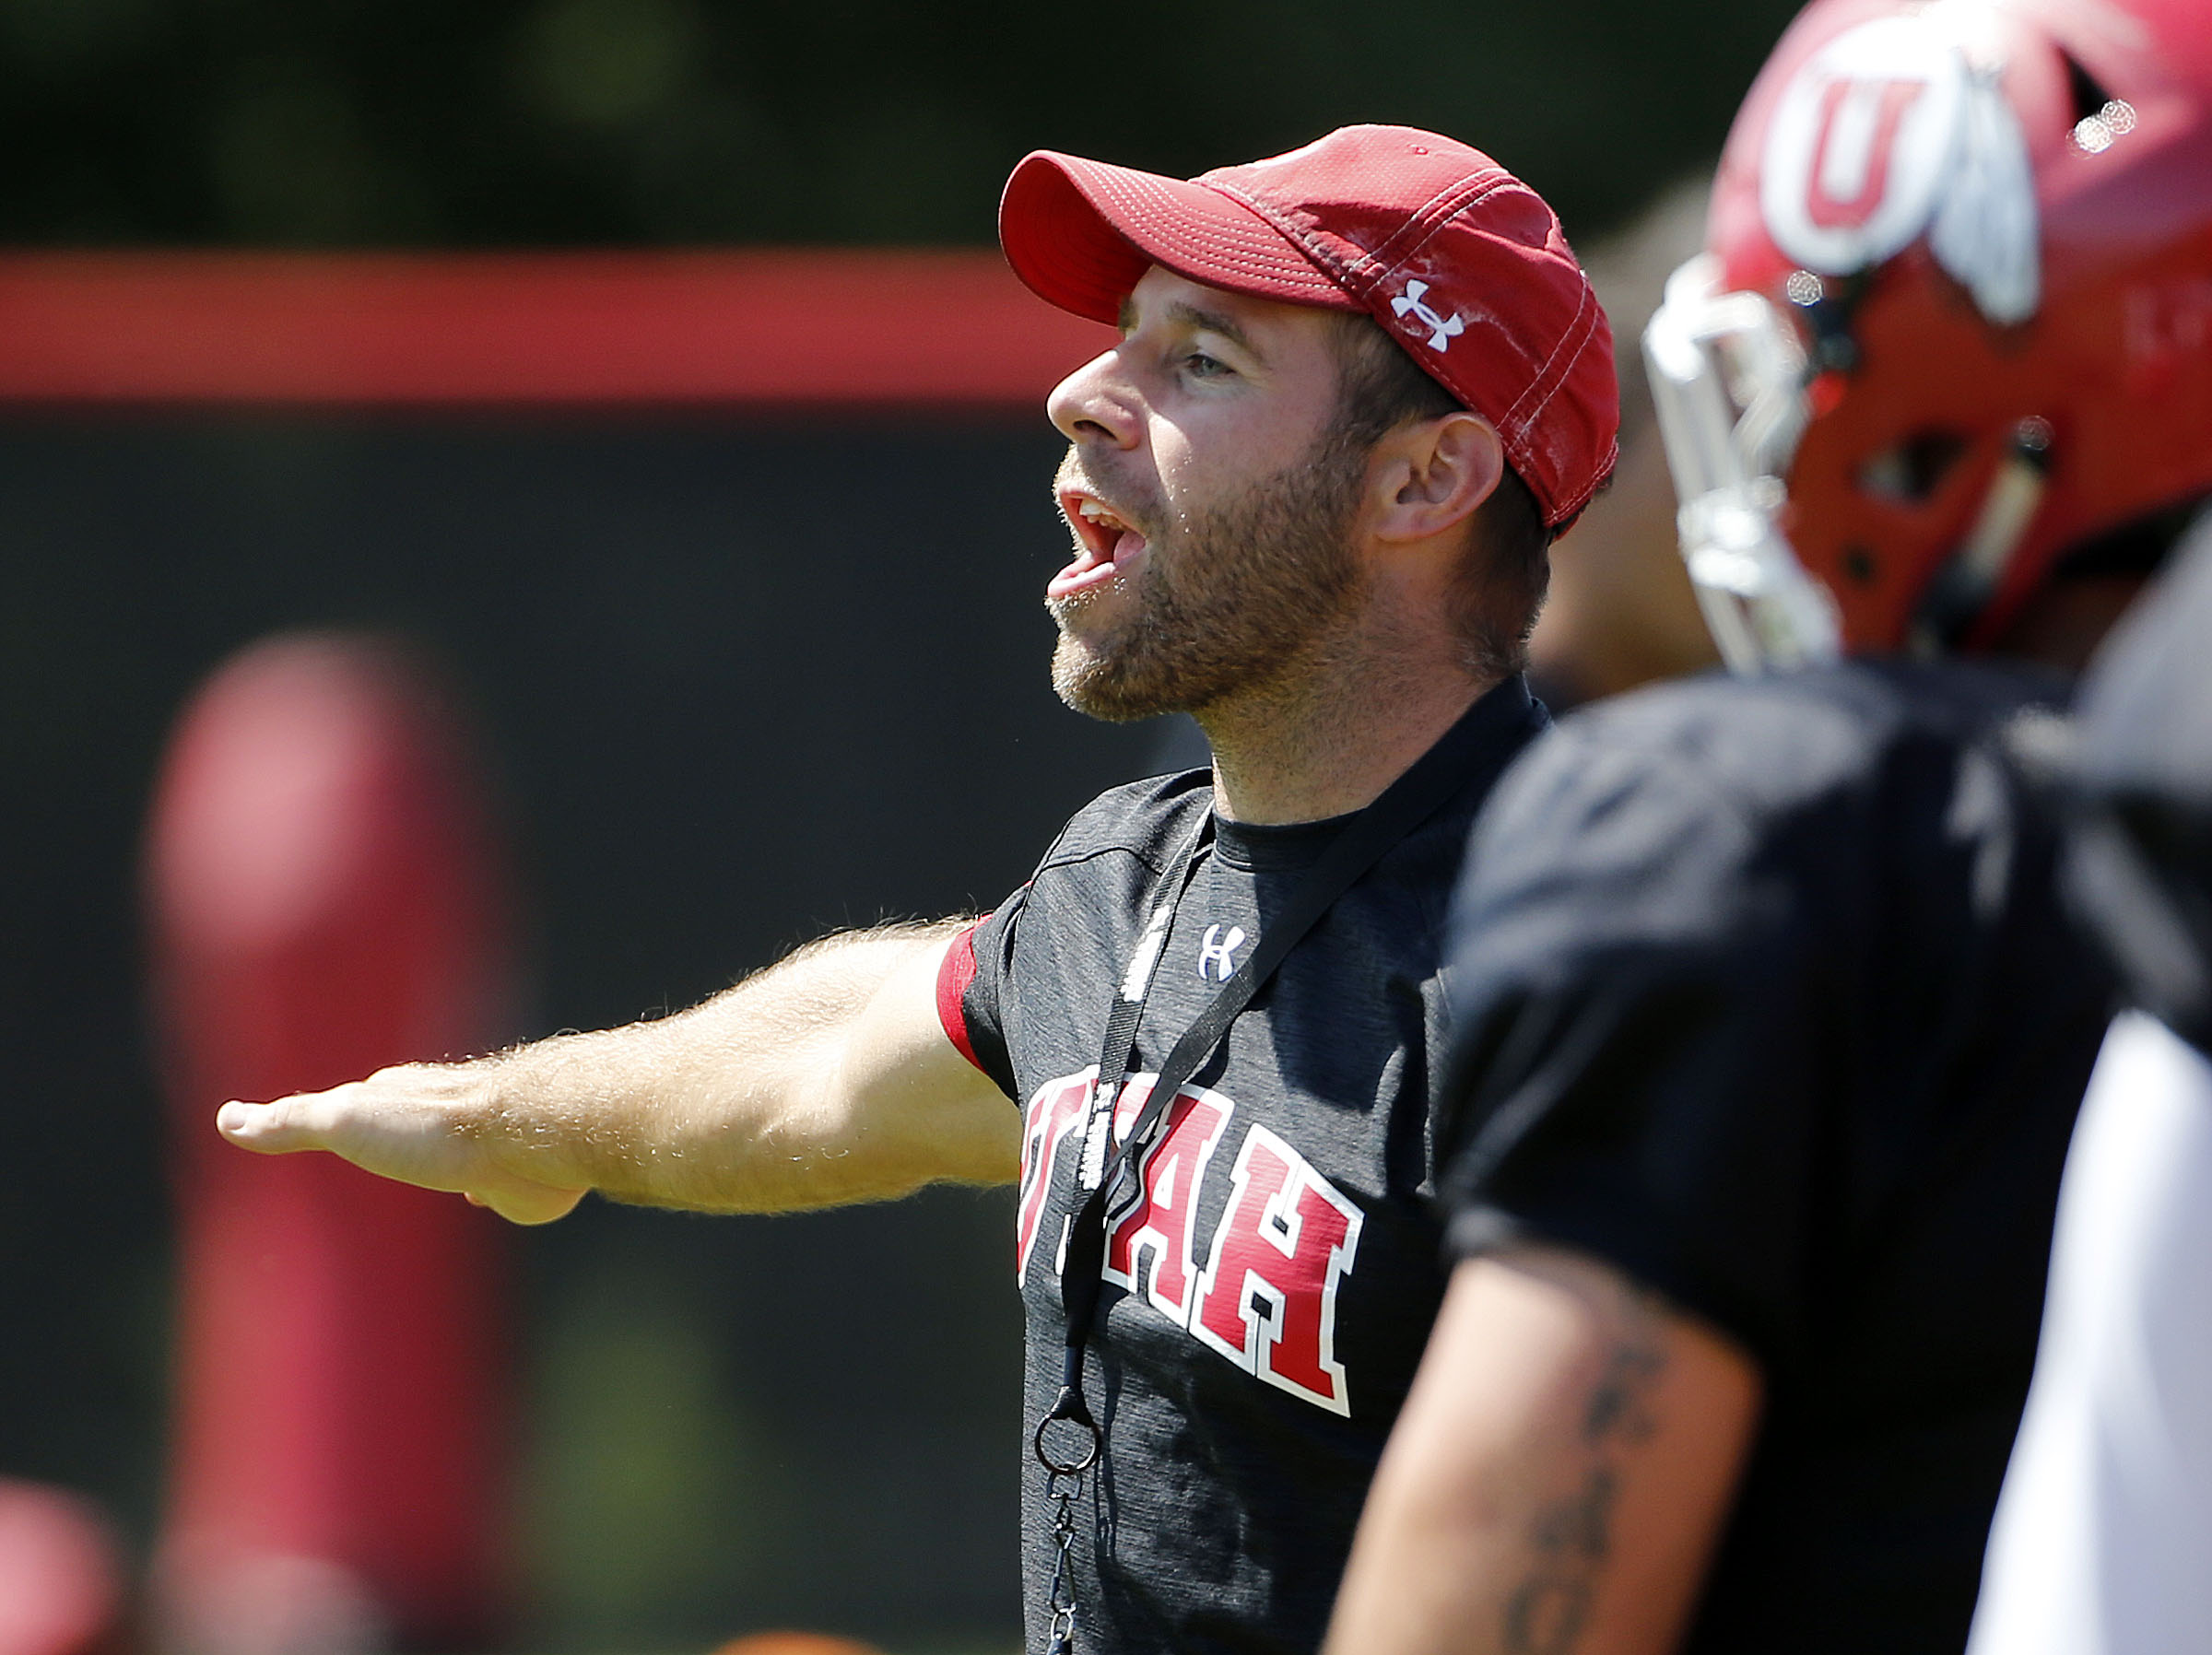 Utah assistant football coach Morgan Scalley has been directed to engage in diversity education as well as have his salary cut in half with a portion going to a forum against hate.